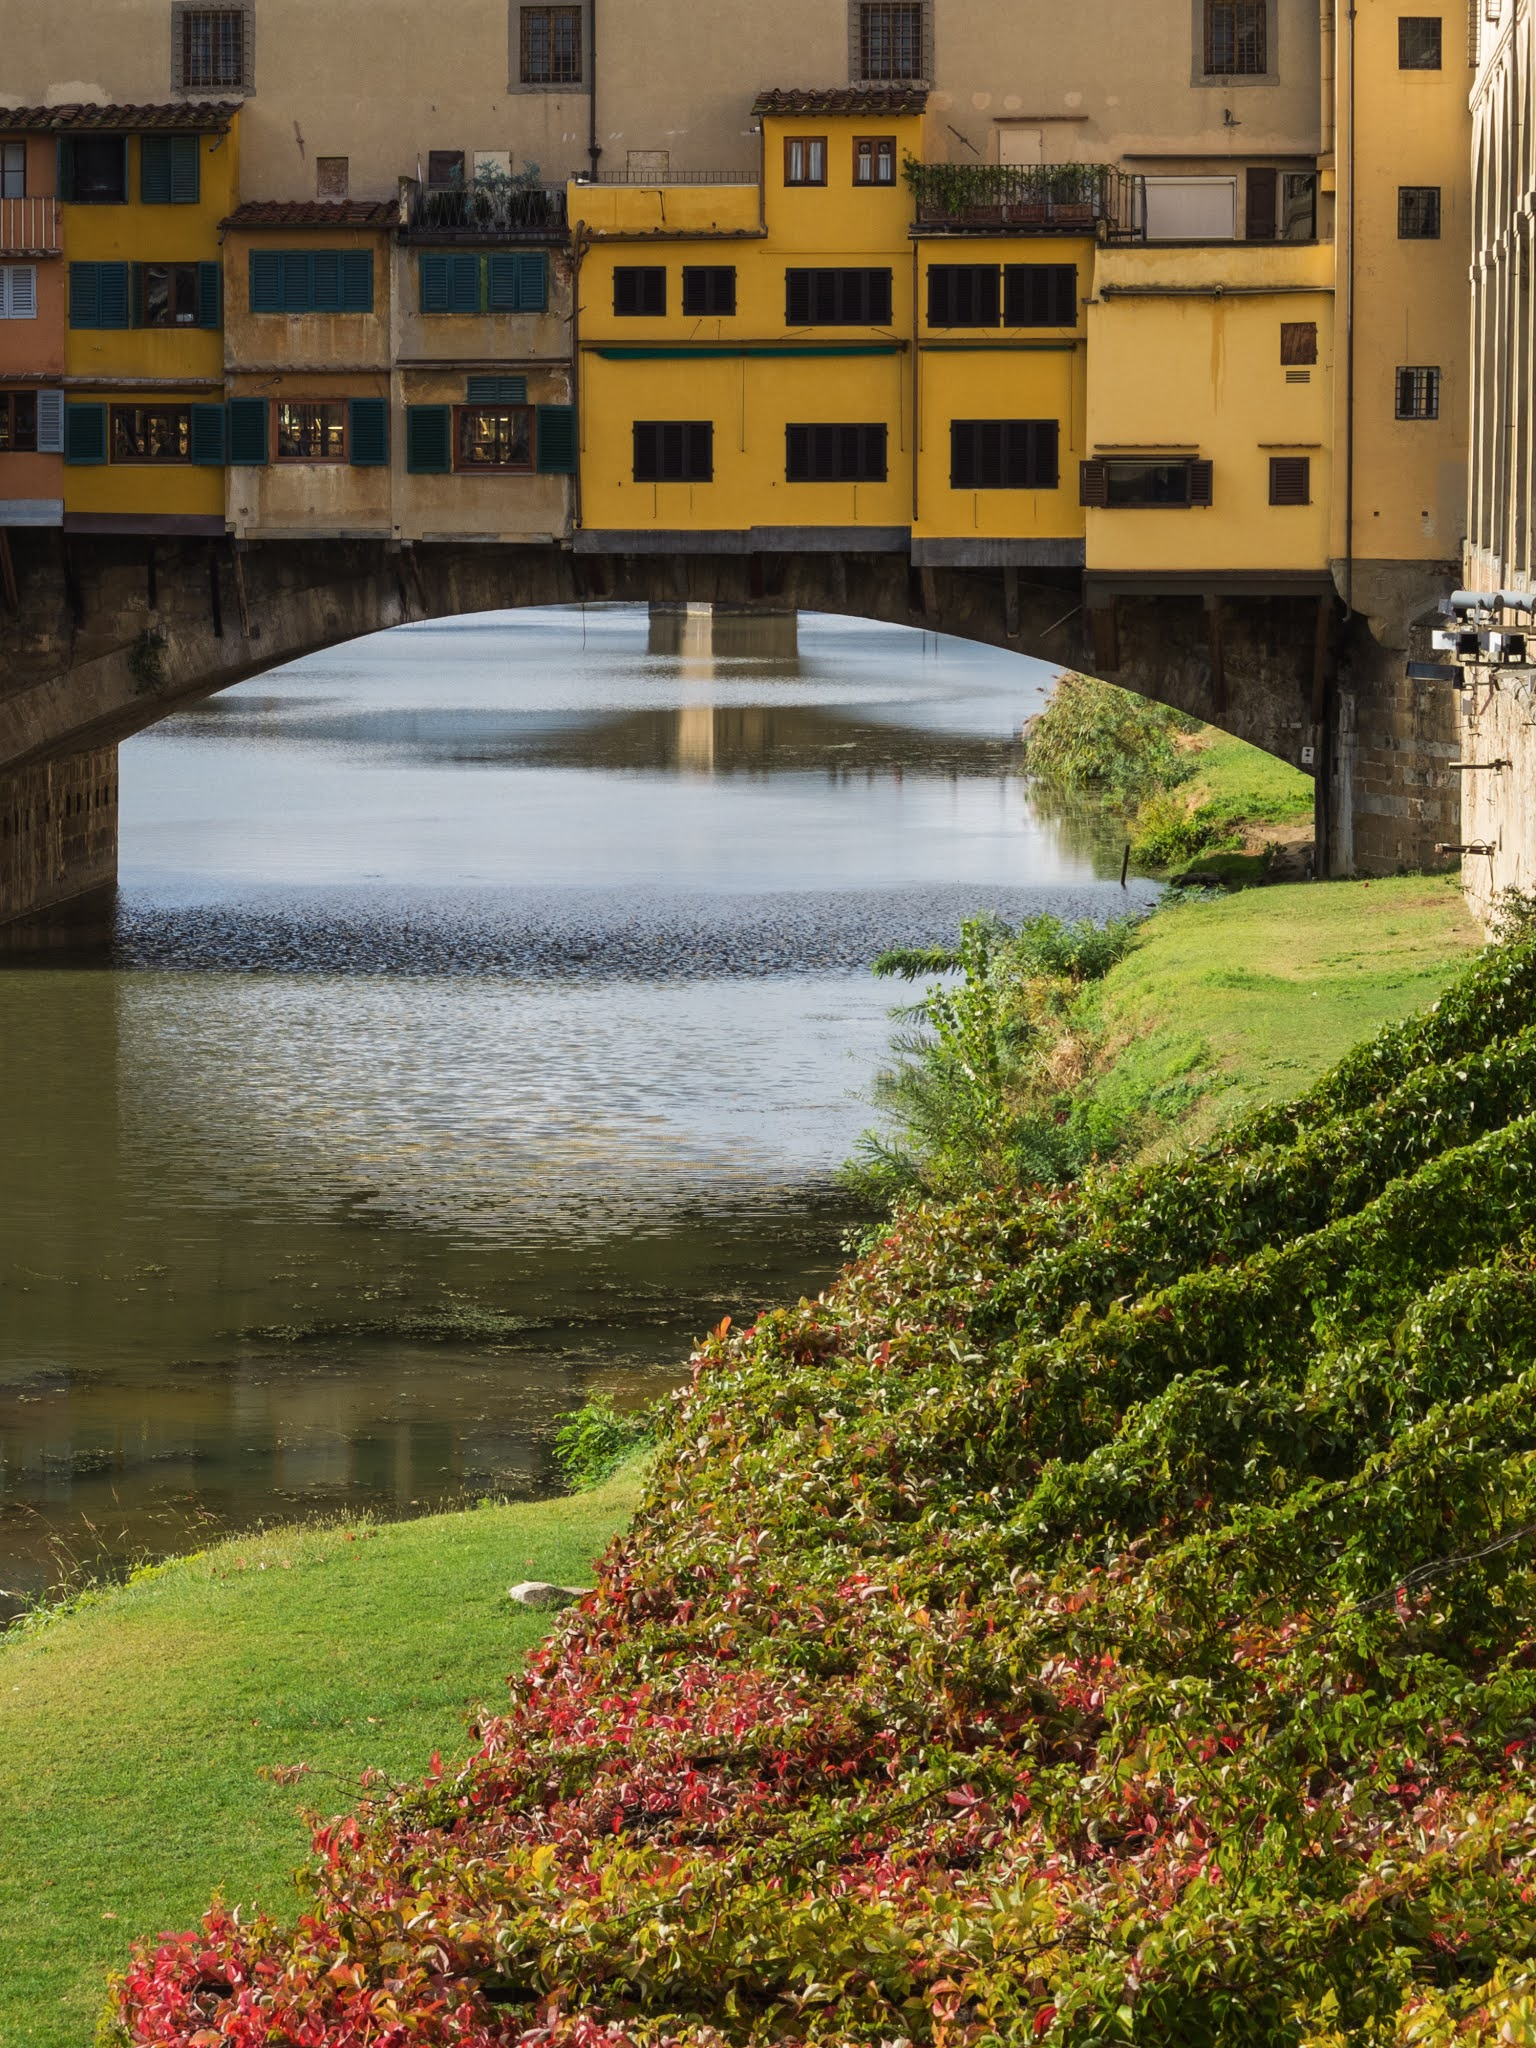 A close up of Ponte Vecchio taken along the embankment of the river Arno.